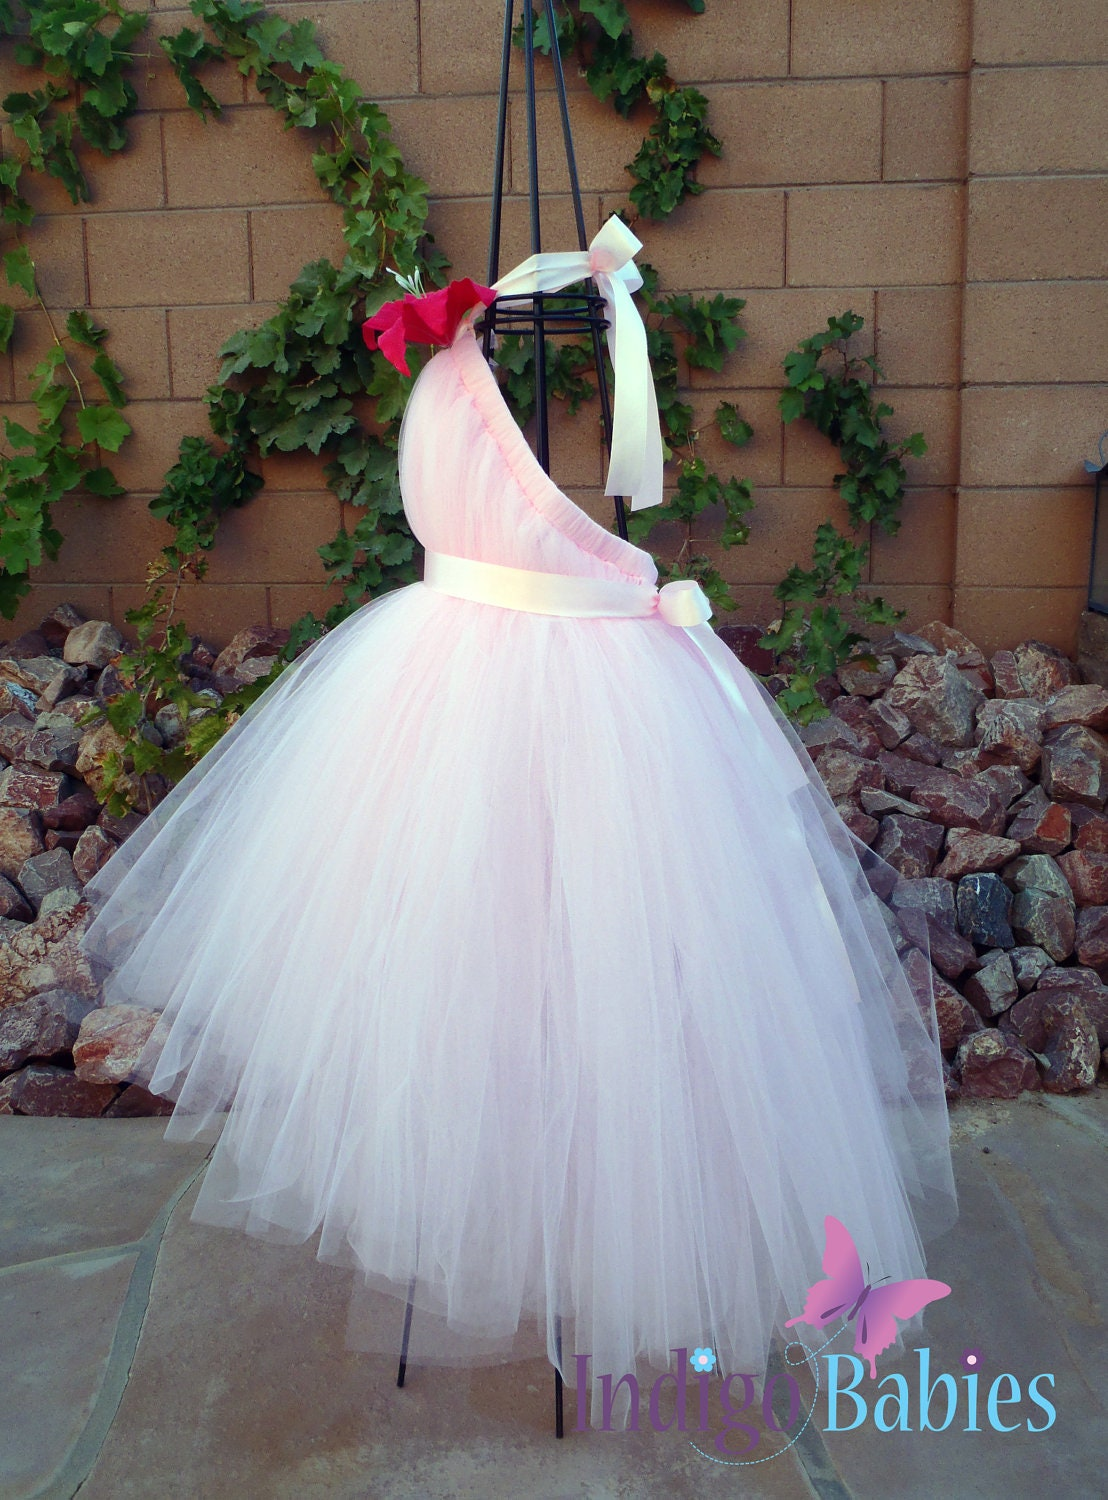 Tuto Tutu Tulle : tutu dress flower girl dress pink tulle tutu tutus by indigobabies ~ Melissatoandfro.com Idées de Décoration